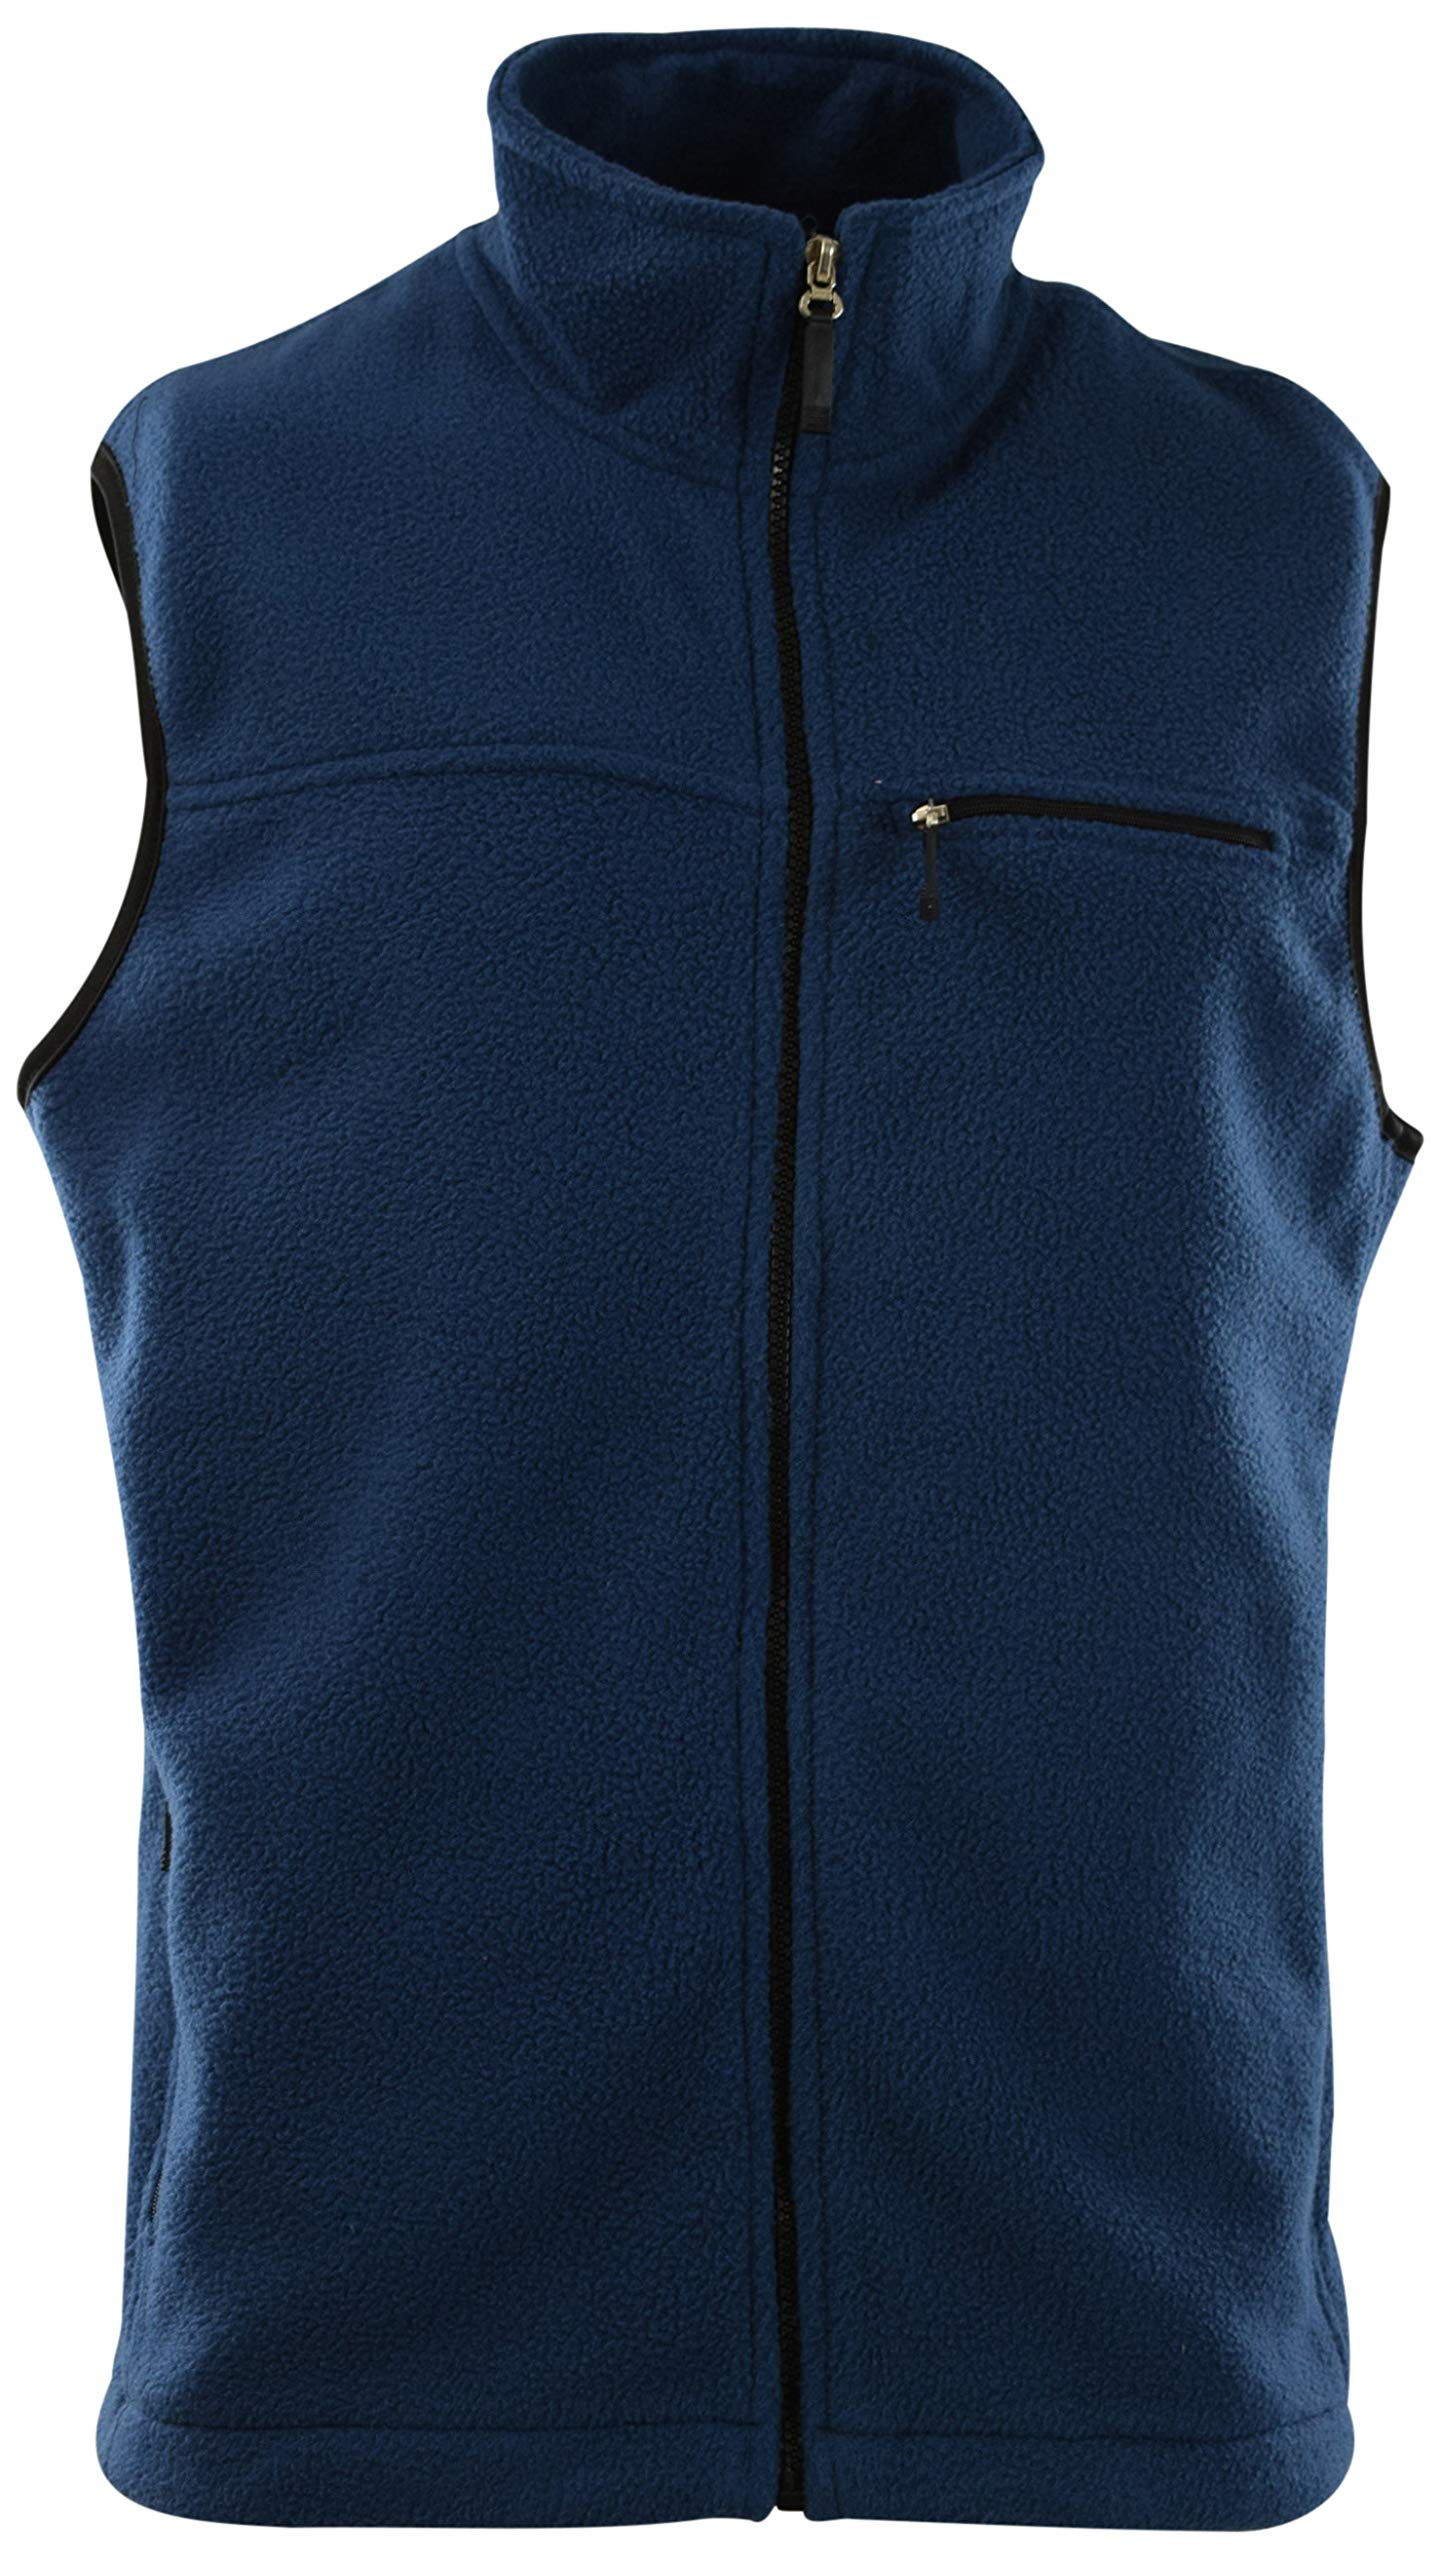 Men's Soft and Durable Sweater Vest Body Warmer (Many Colors and Styles to Choose from) (XX-Large, and-Blue) by ChoiceApparel